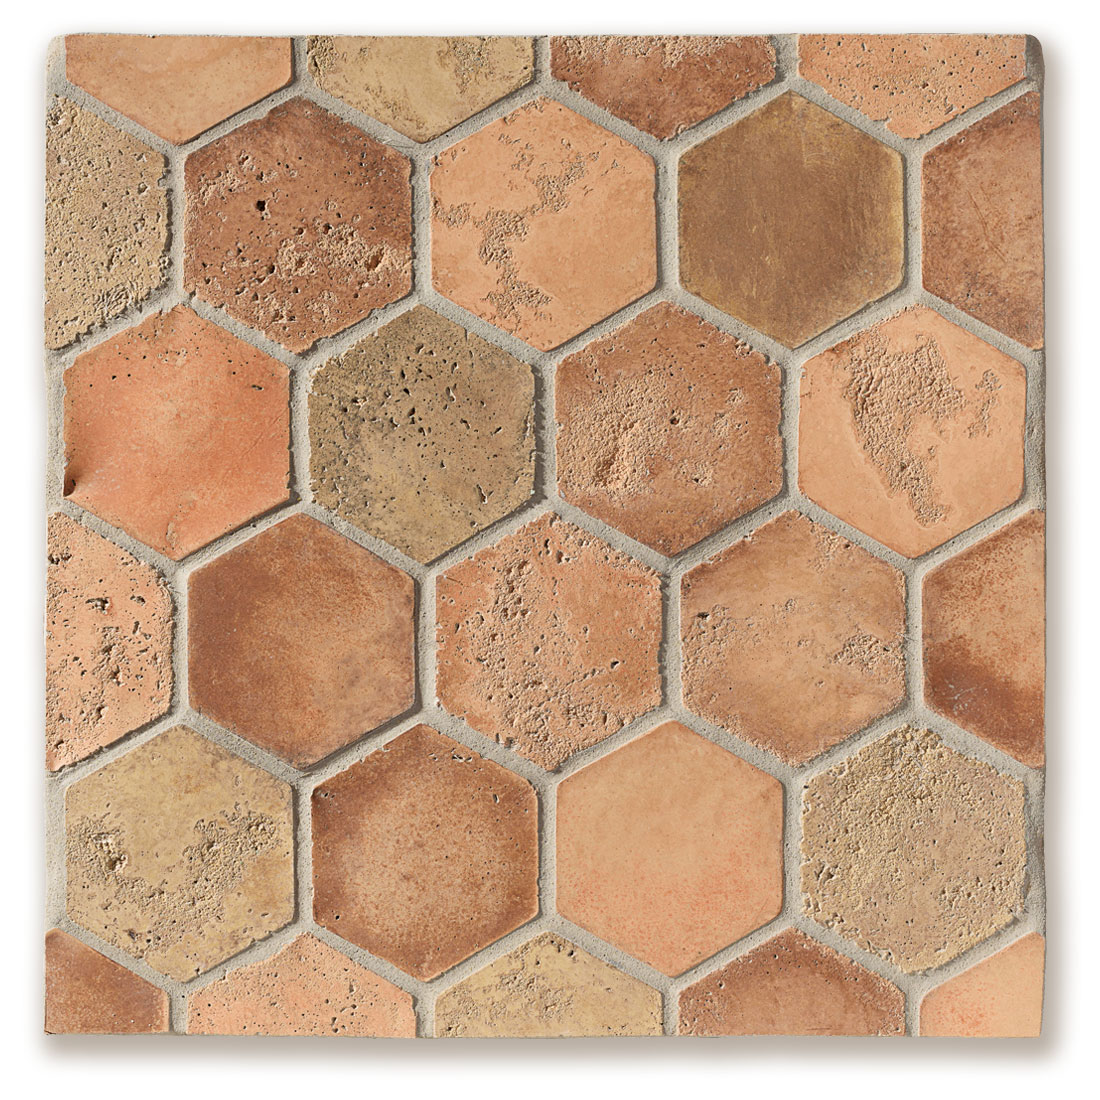 How much color variation can i expect with arto tiles rustic low fired glazes are applied to our already fired tile bodies so these will have the least variation of all our tiles dailygadgetfo Choice Image